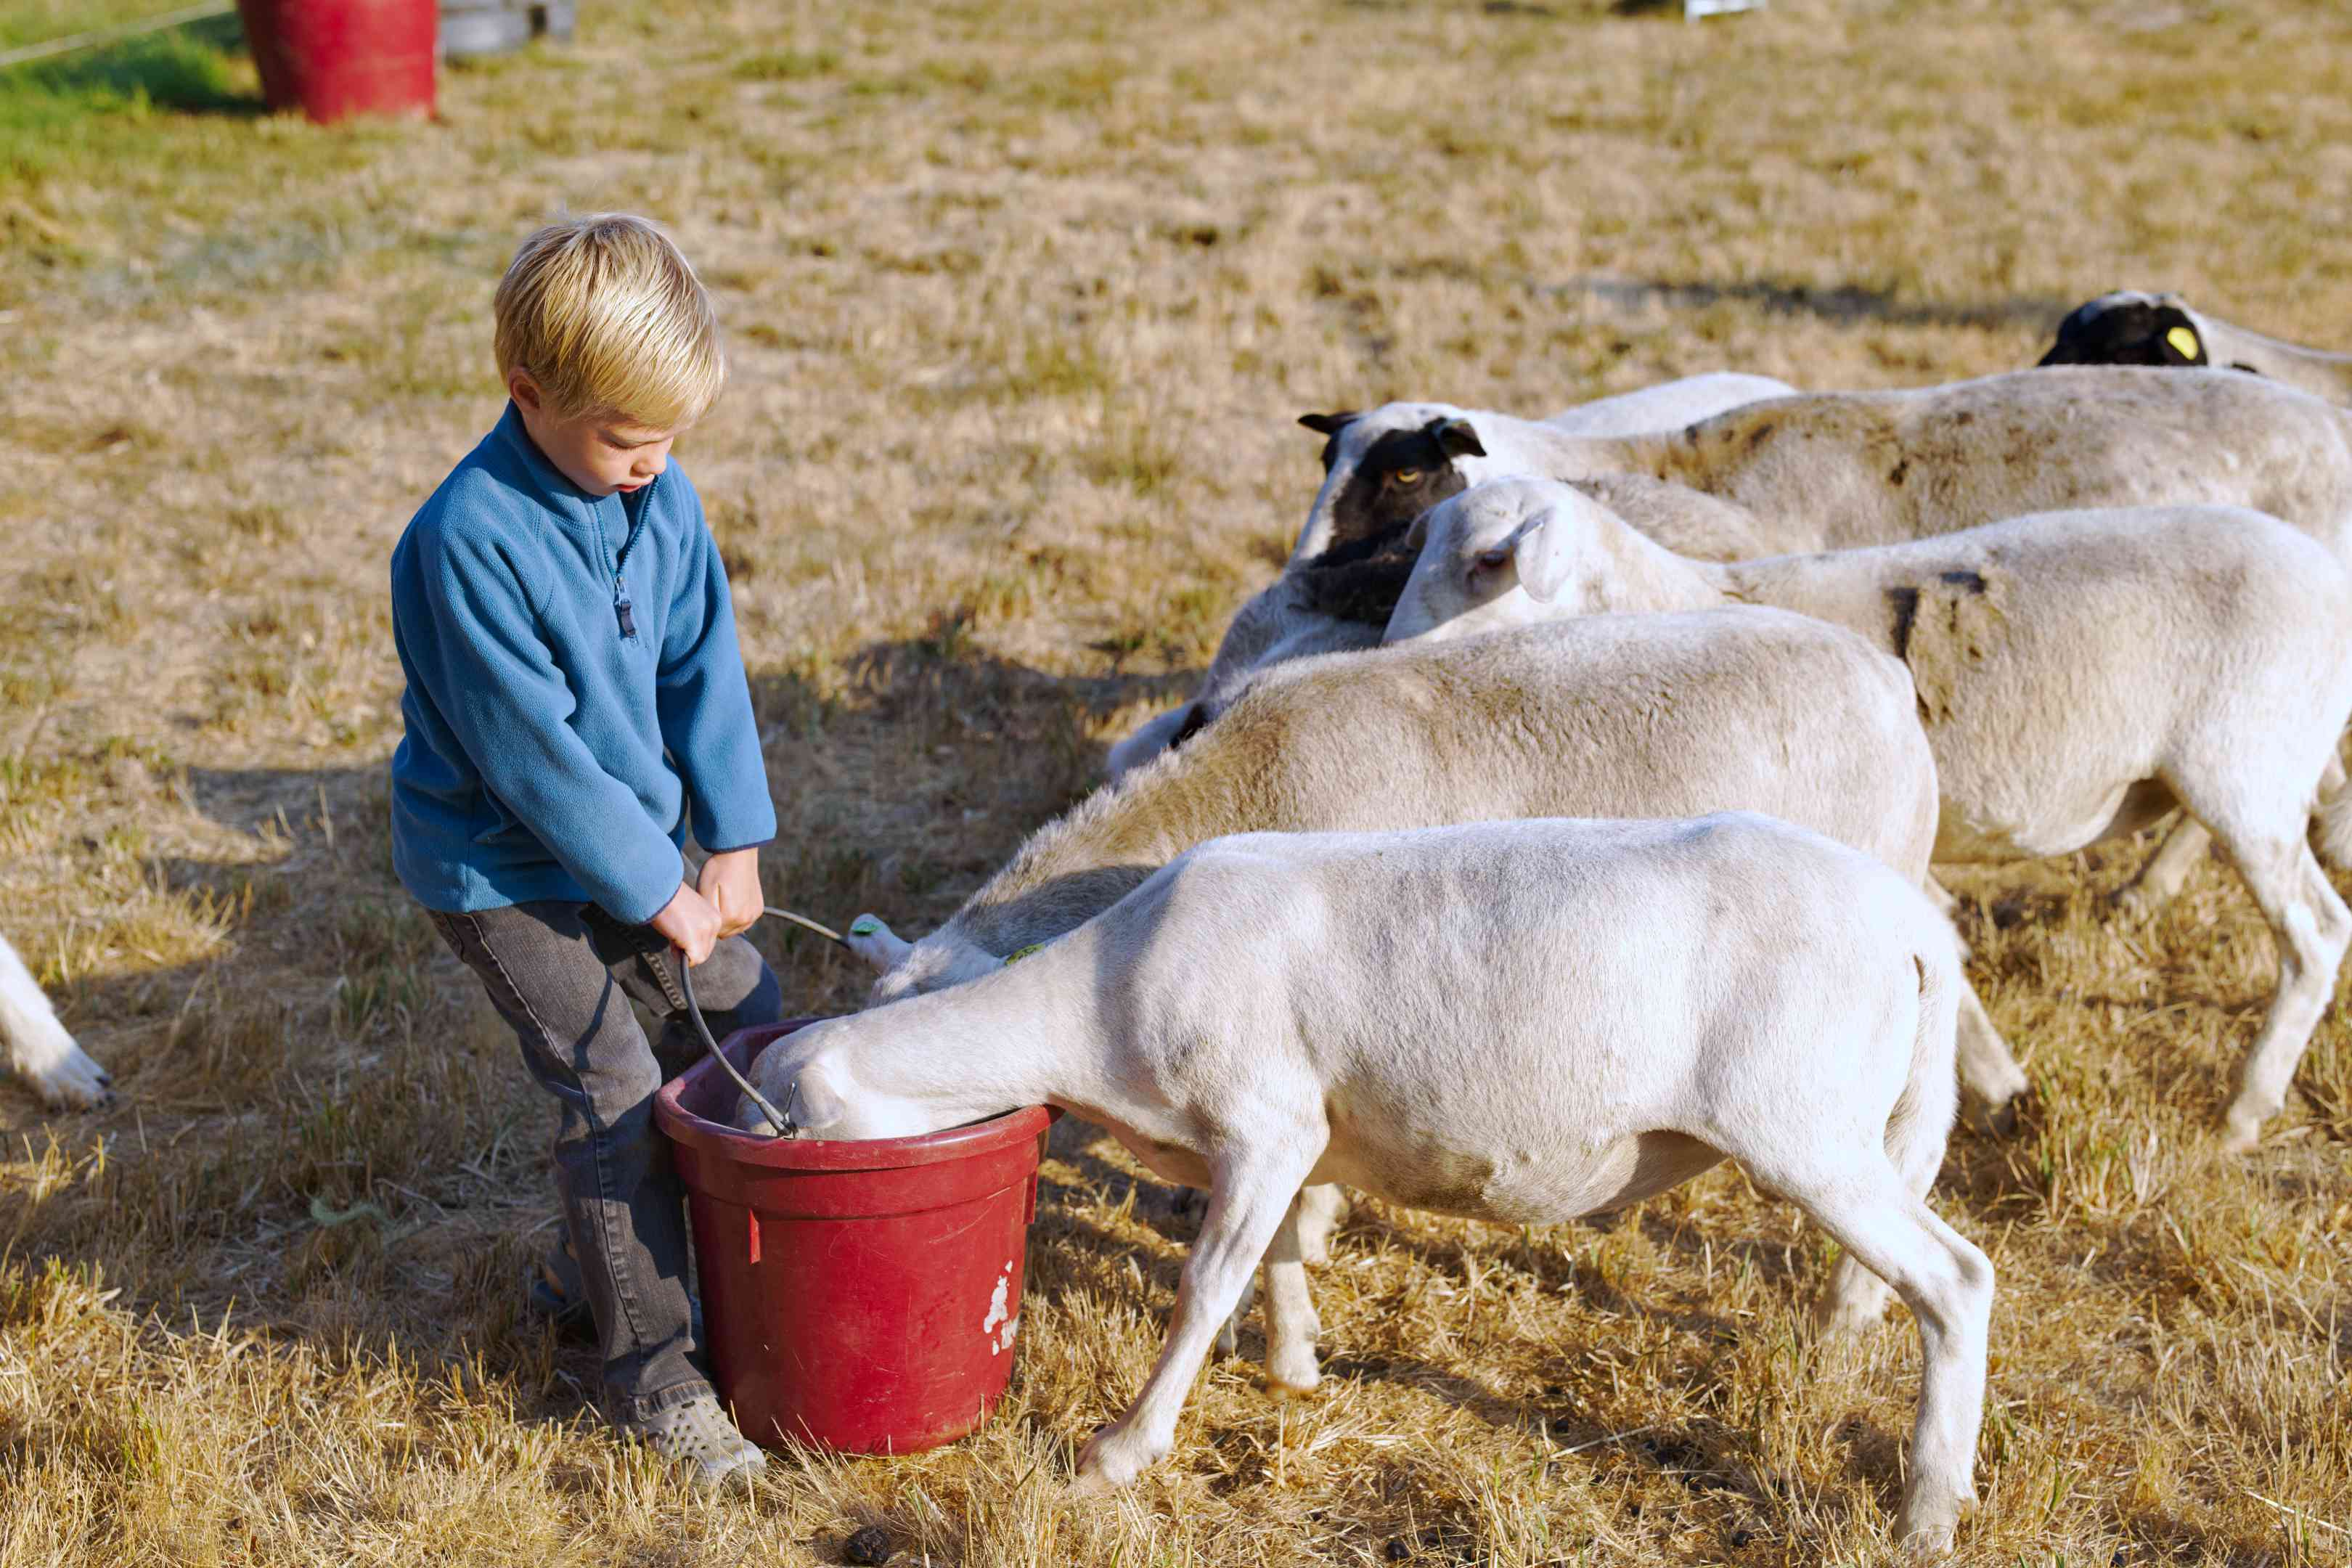 little boy holds red bucket full of food for sheep sticking full heads in